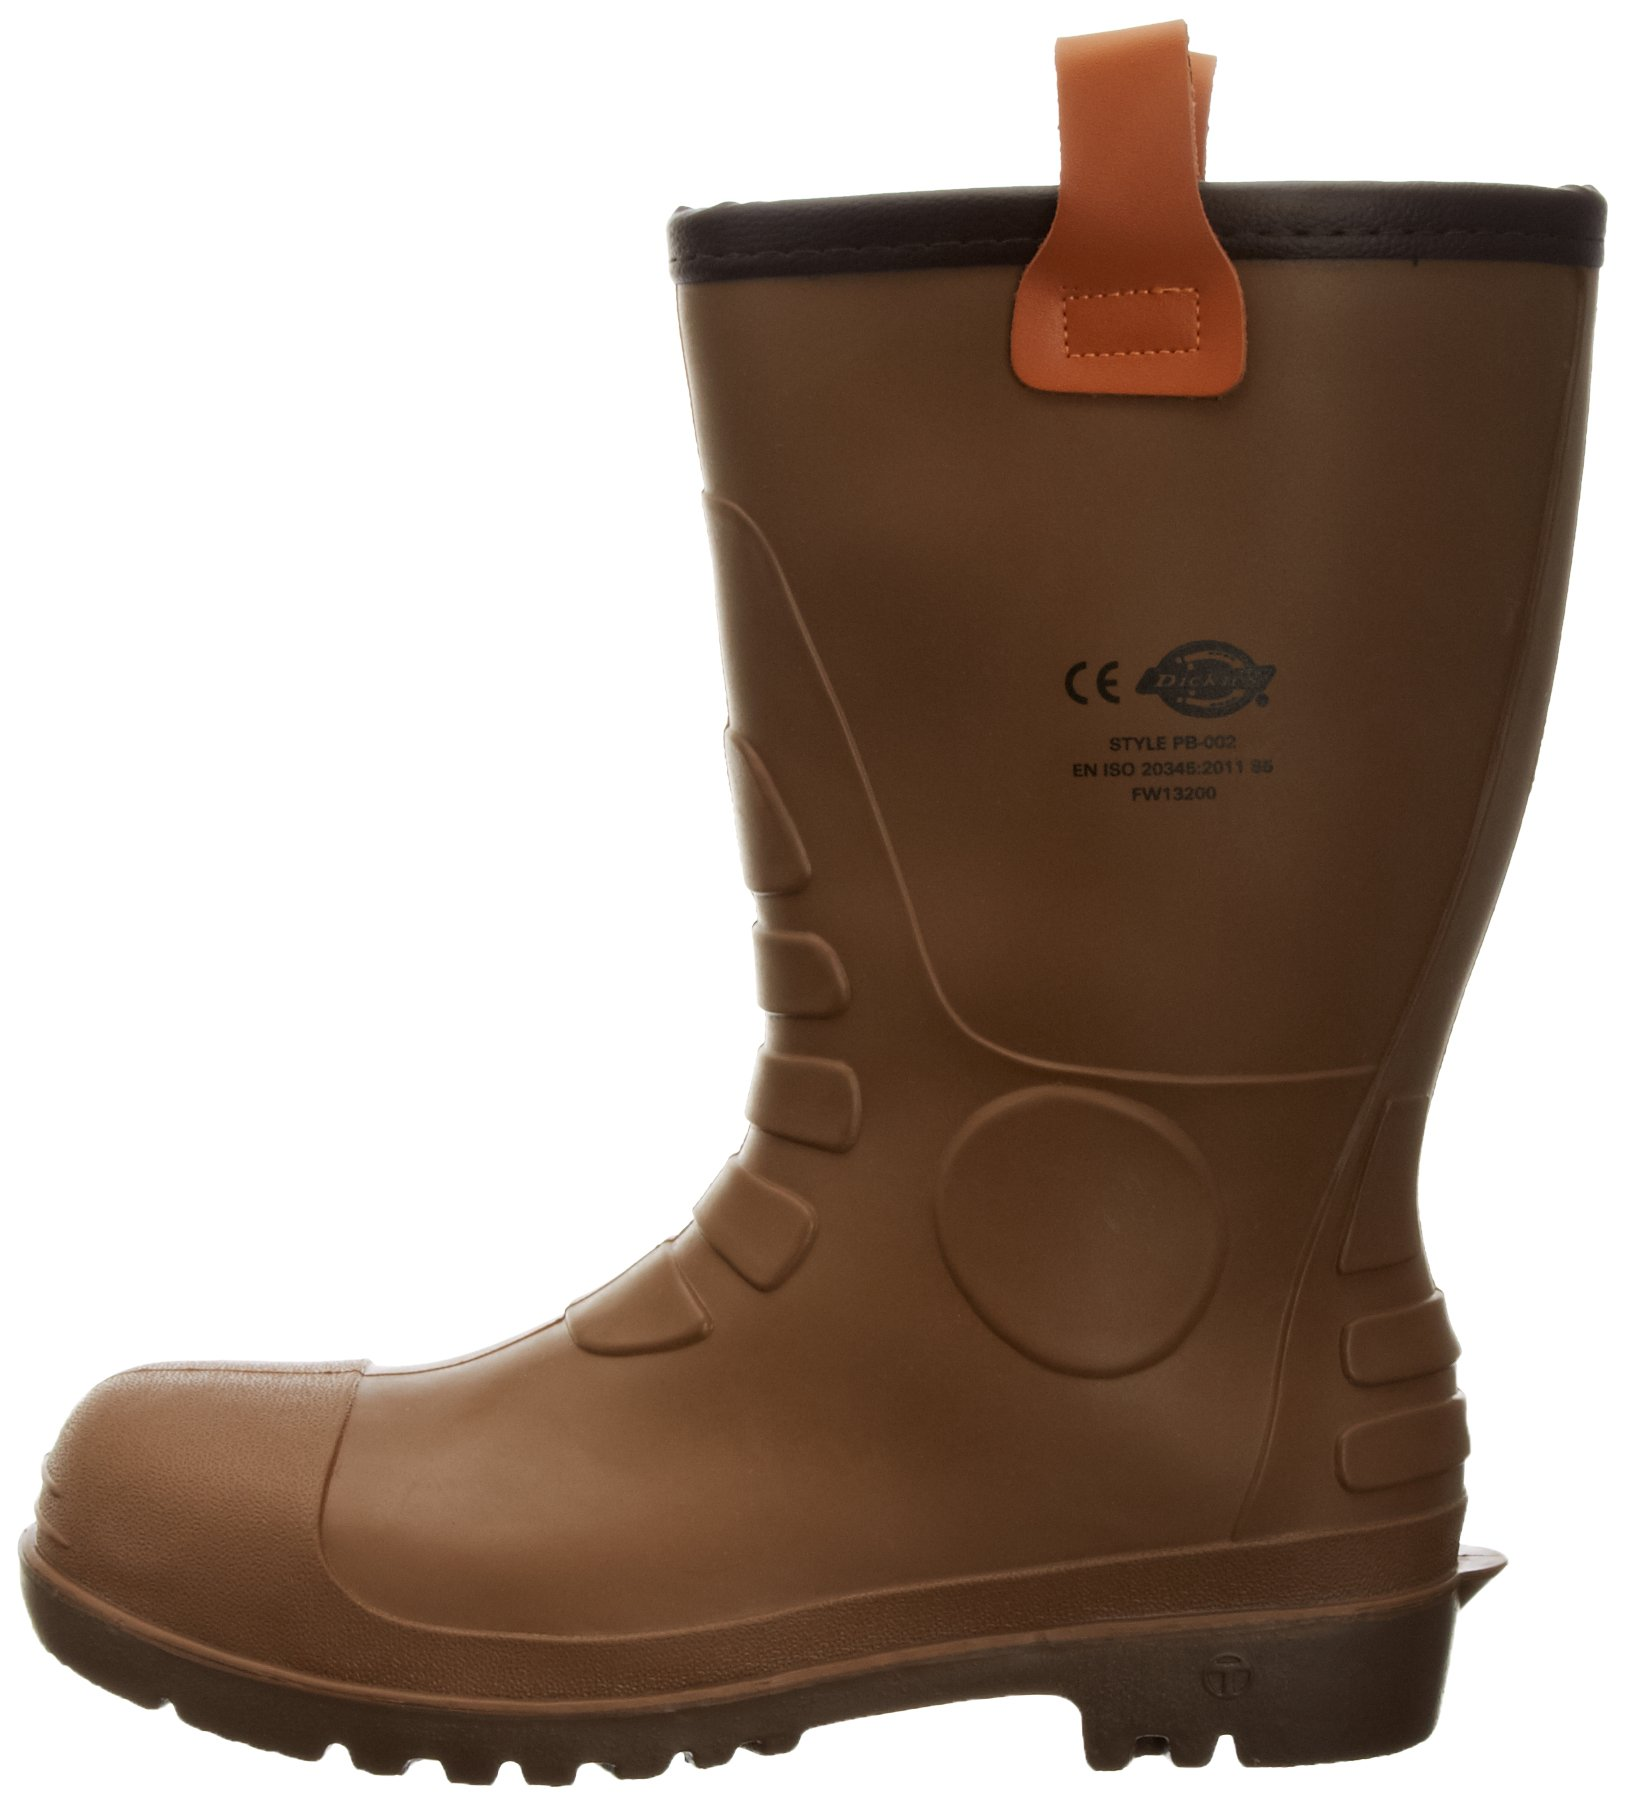 MENS DICKIES SUPER SAFETY WORK WELLIES SIZE UK 6-12 WELLINGTONS FW13105